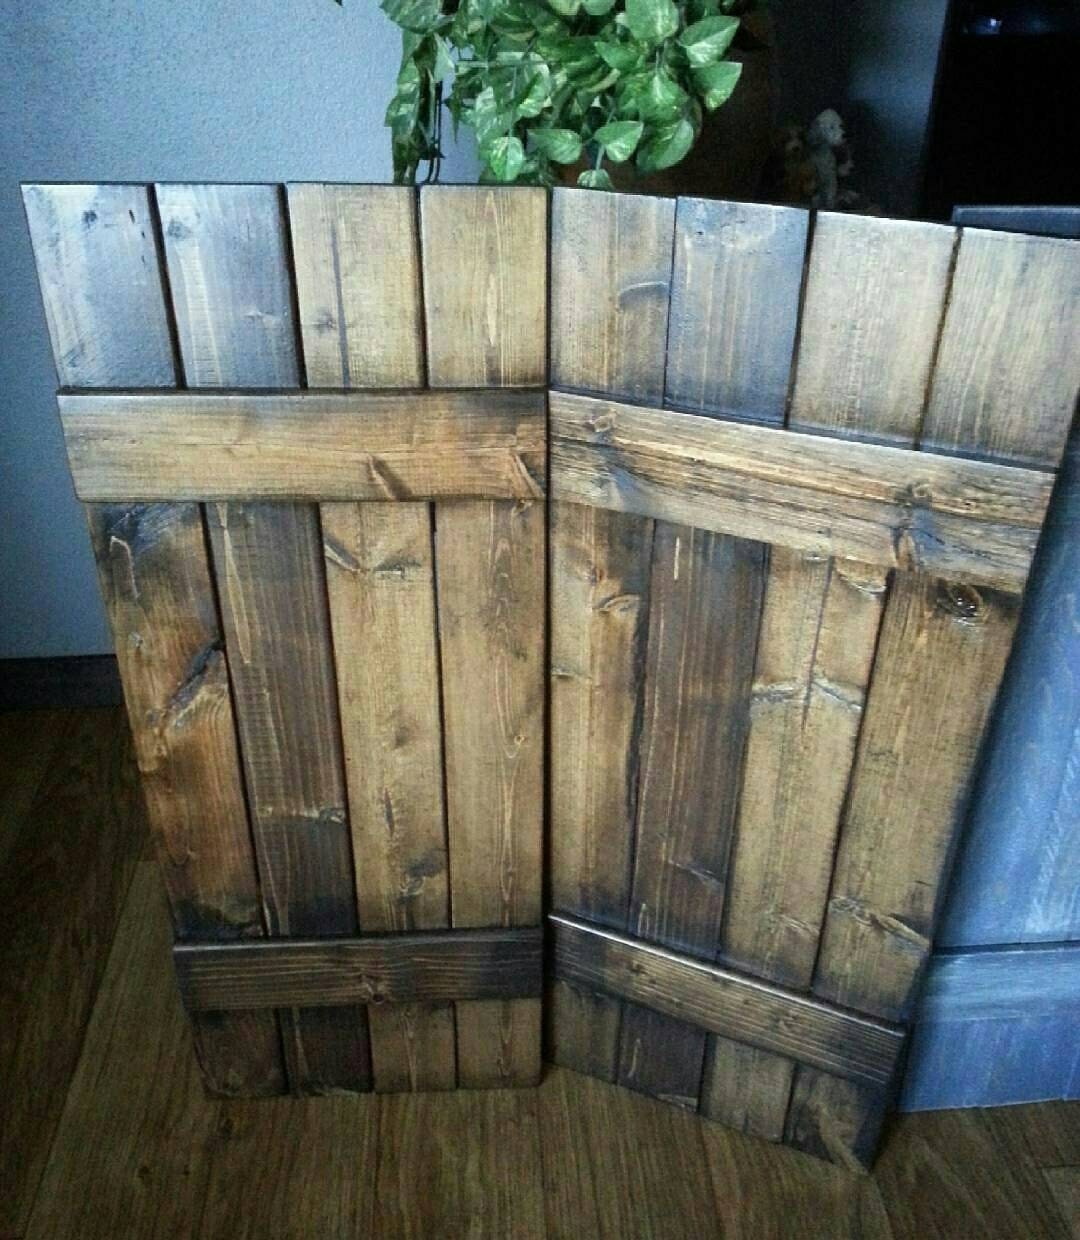 48 RUSTIC Wood Shutters   Primitive Shutters   Decorative Shutters   Interior  Shutters   Exterior Shutters   Wall Decor   Wooden Shutters